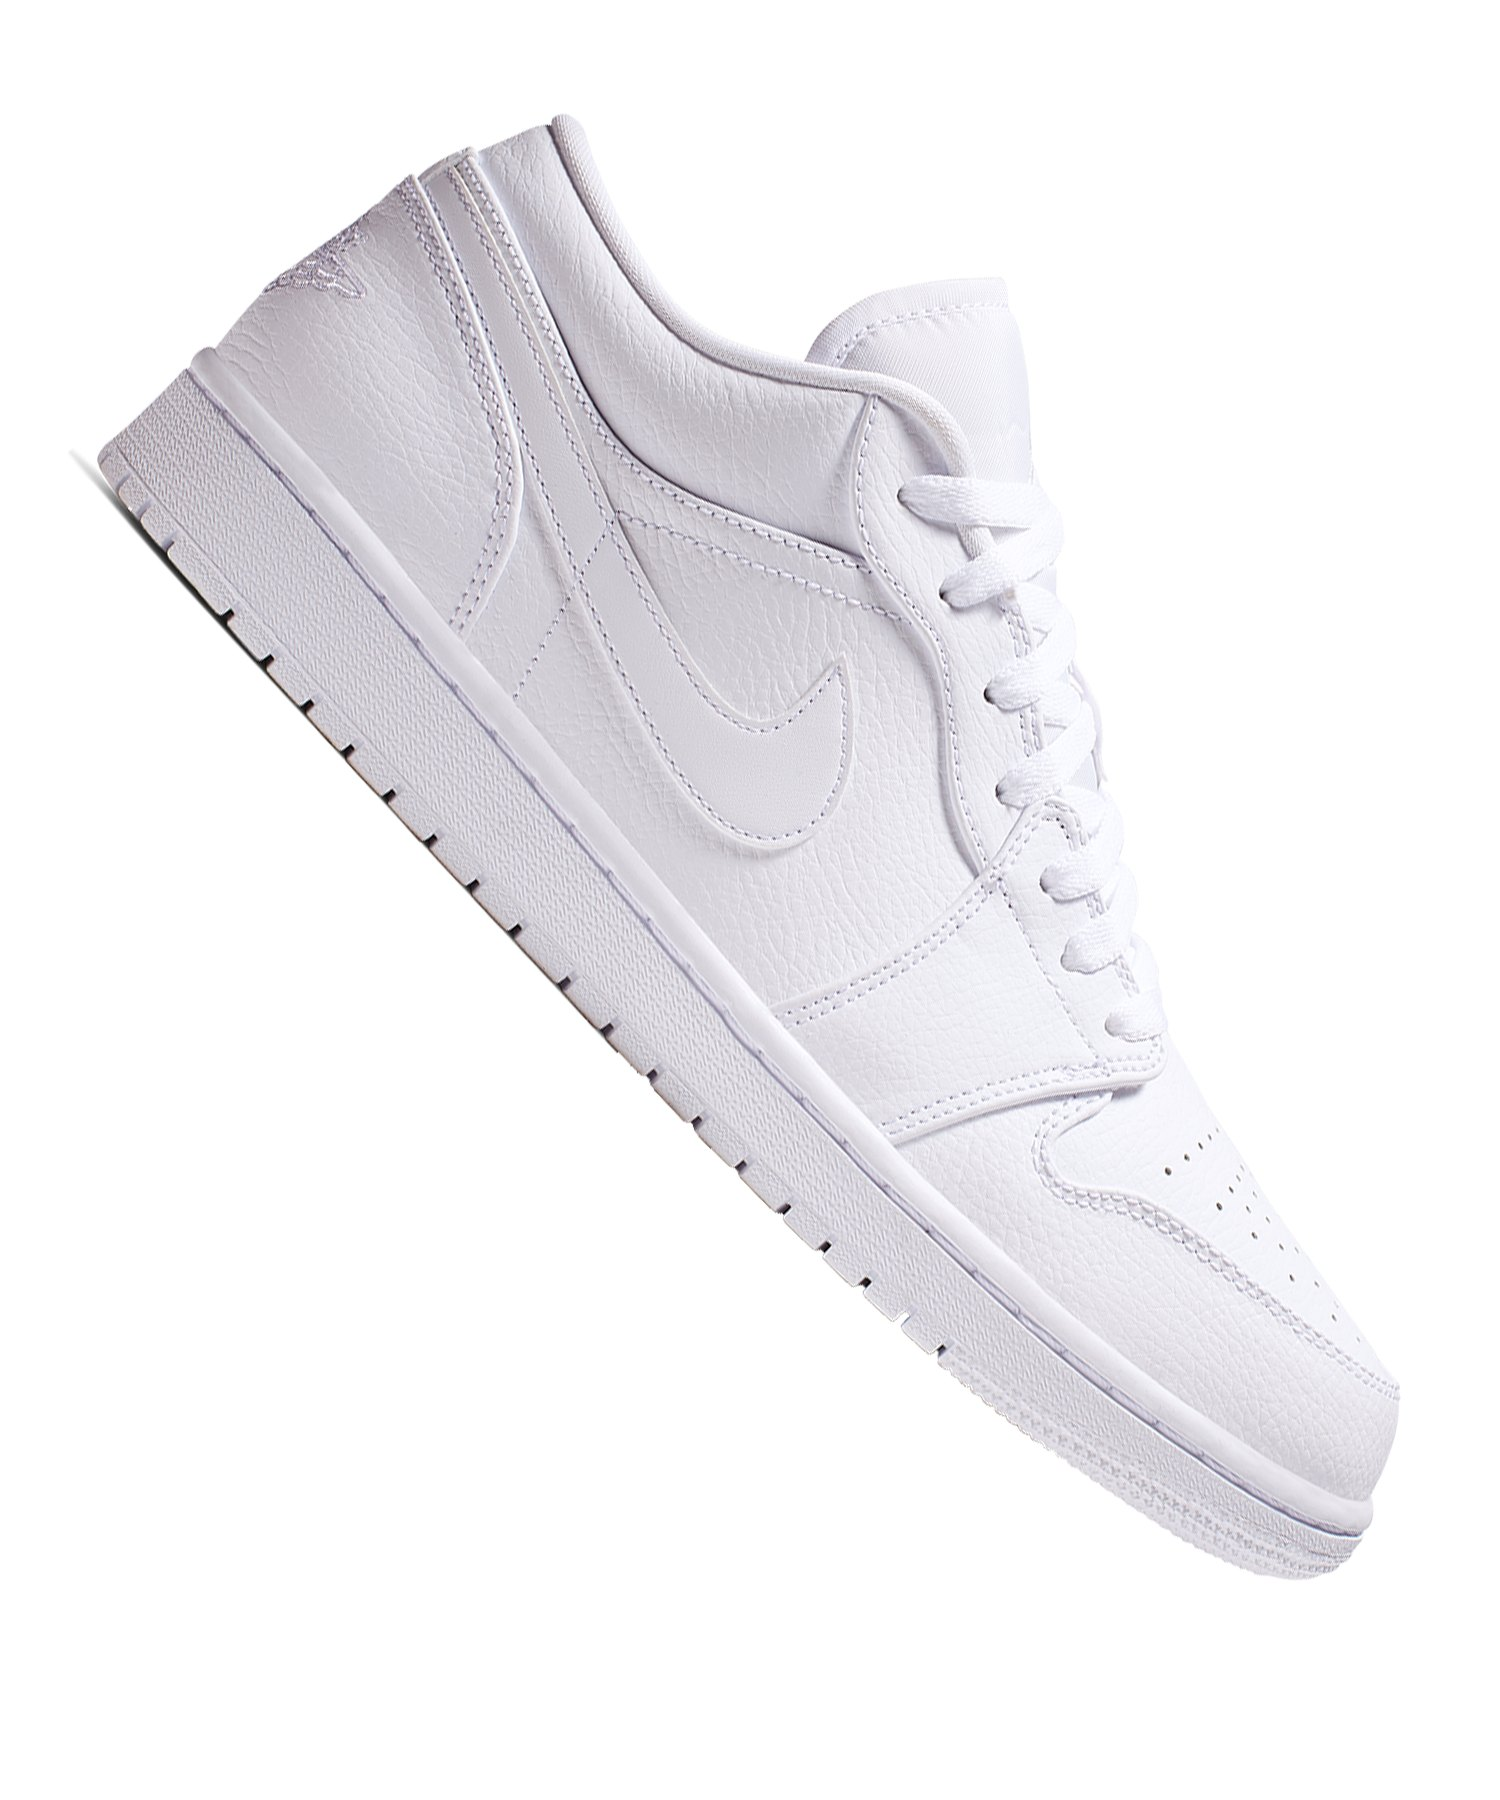 timeless design 78932 810c6 Jordan Air 1 Low Sneaker Weiss F112 - Weiss